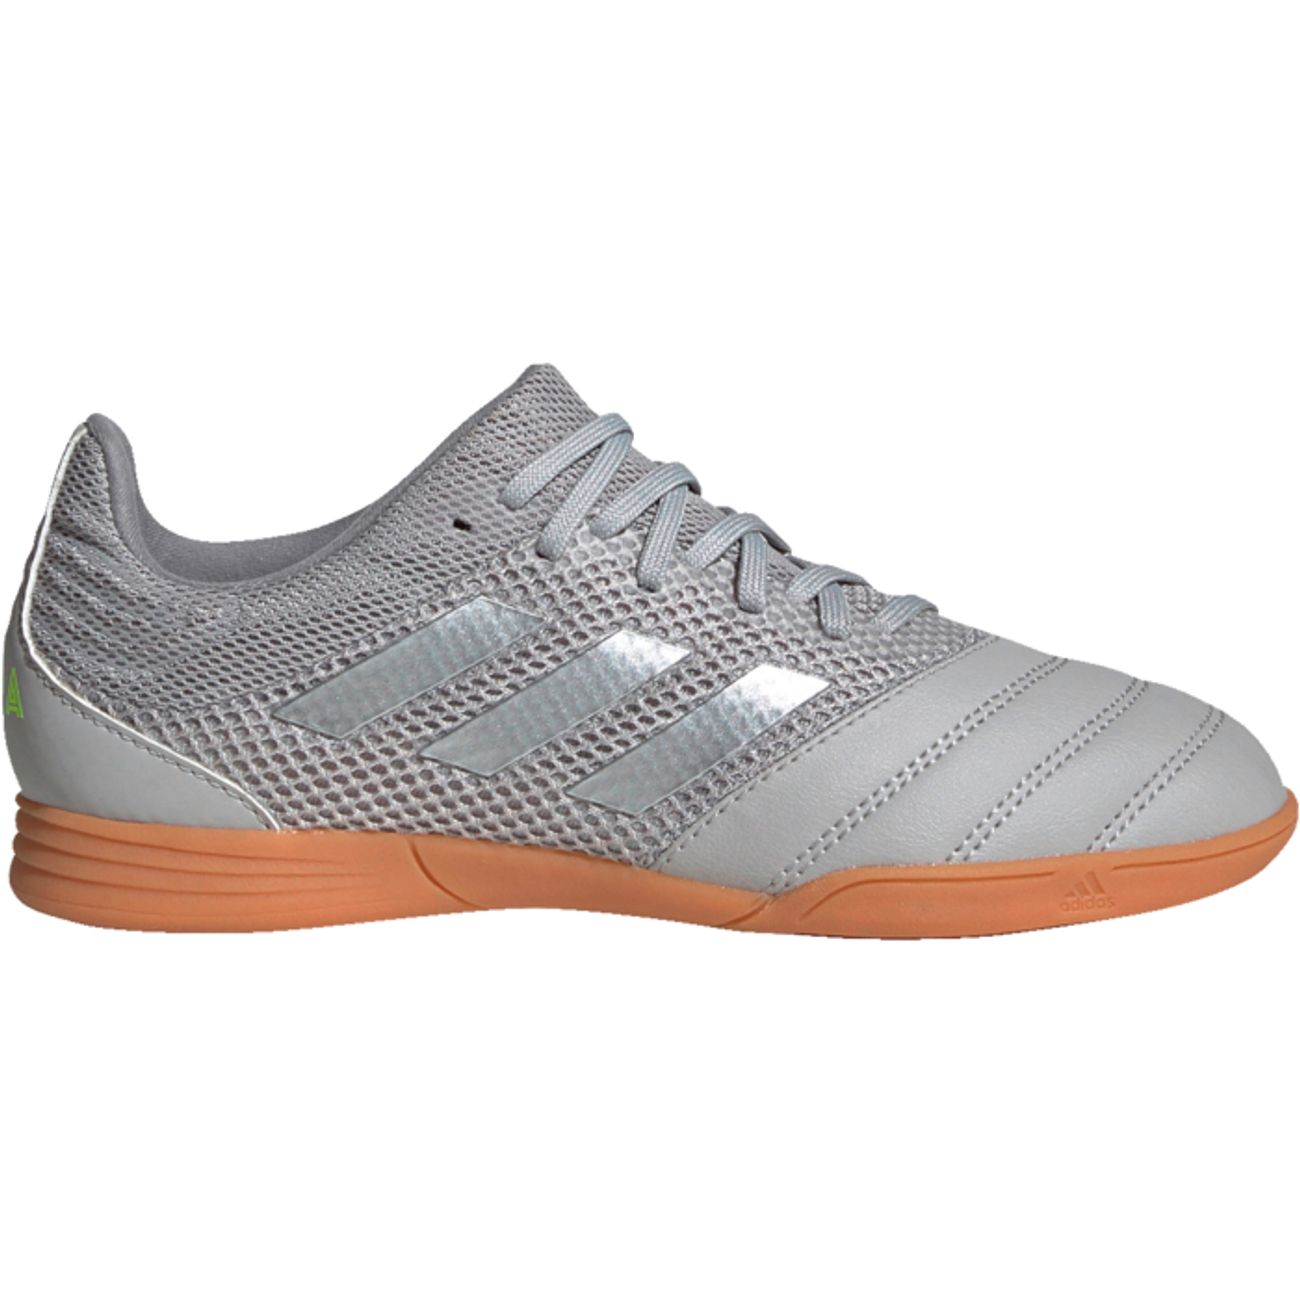 CHAUSSURES BASSES Football junior ADIDAS COPA 20.3 IN SALA